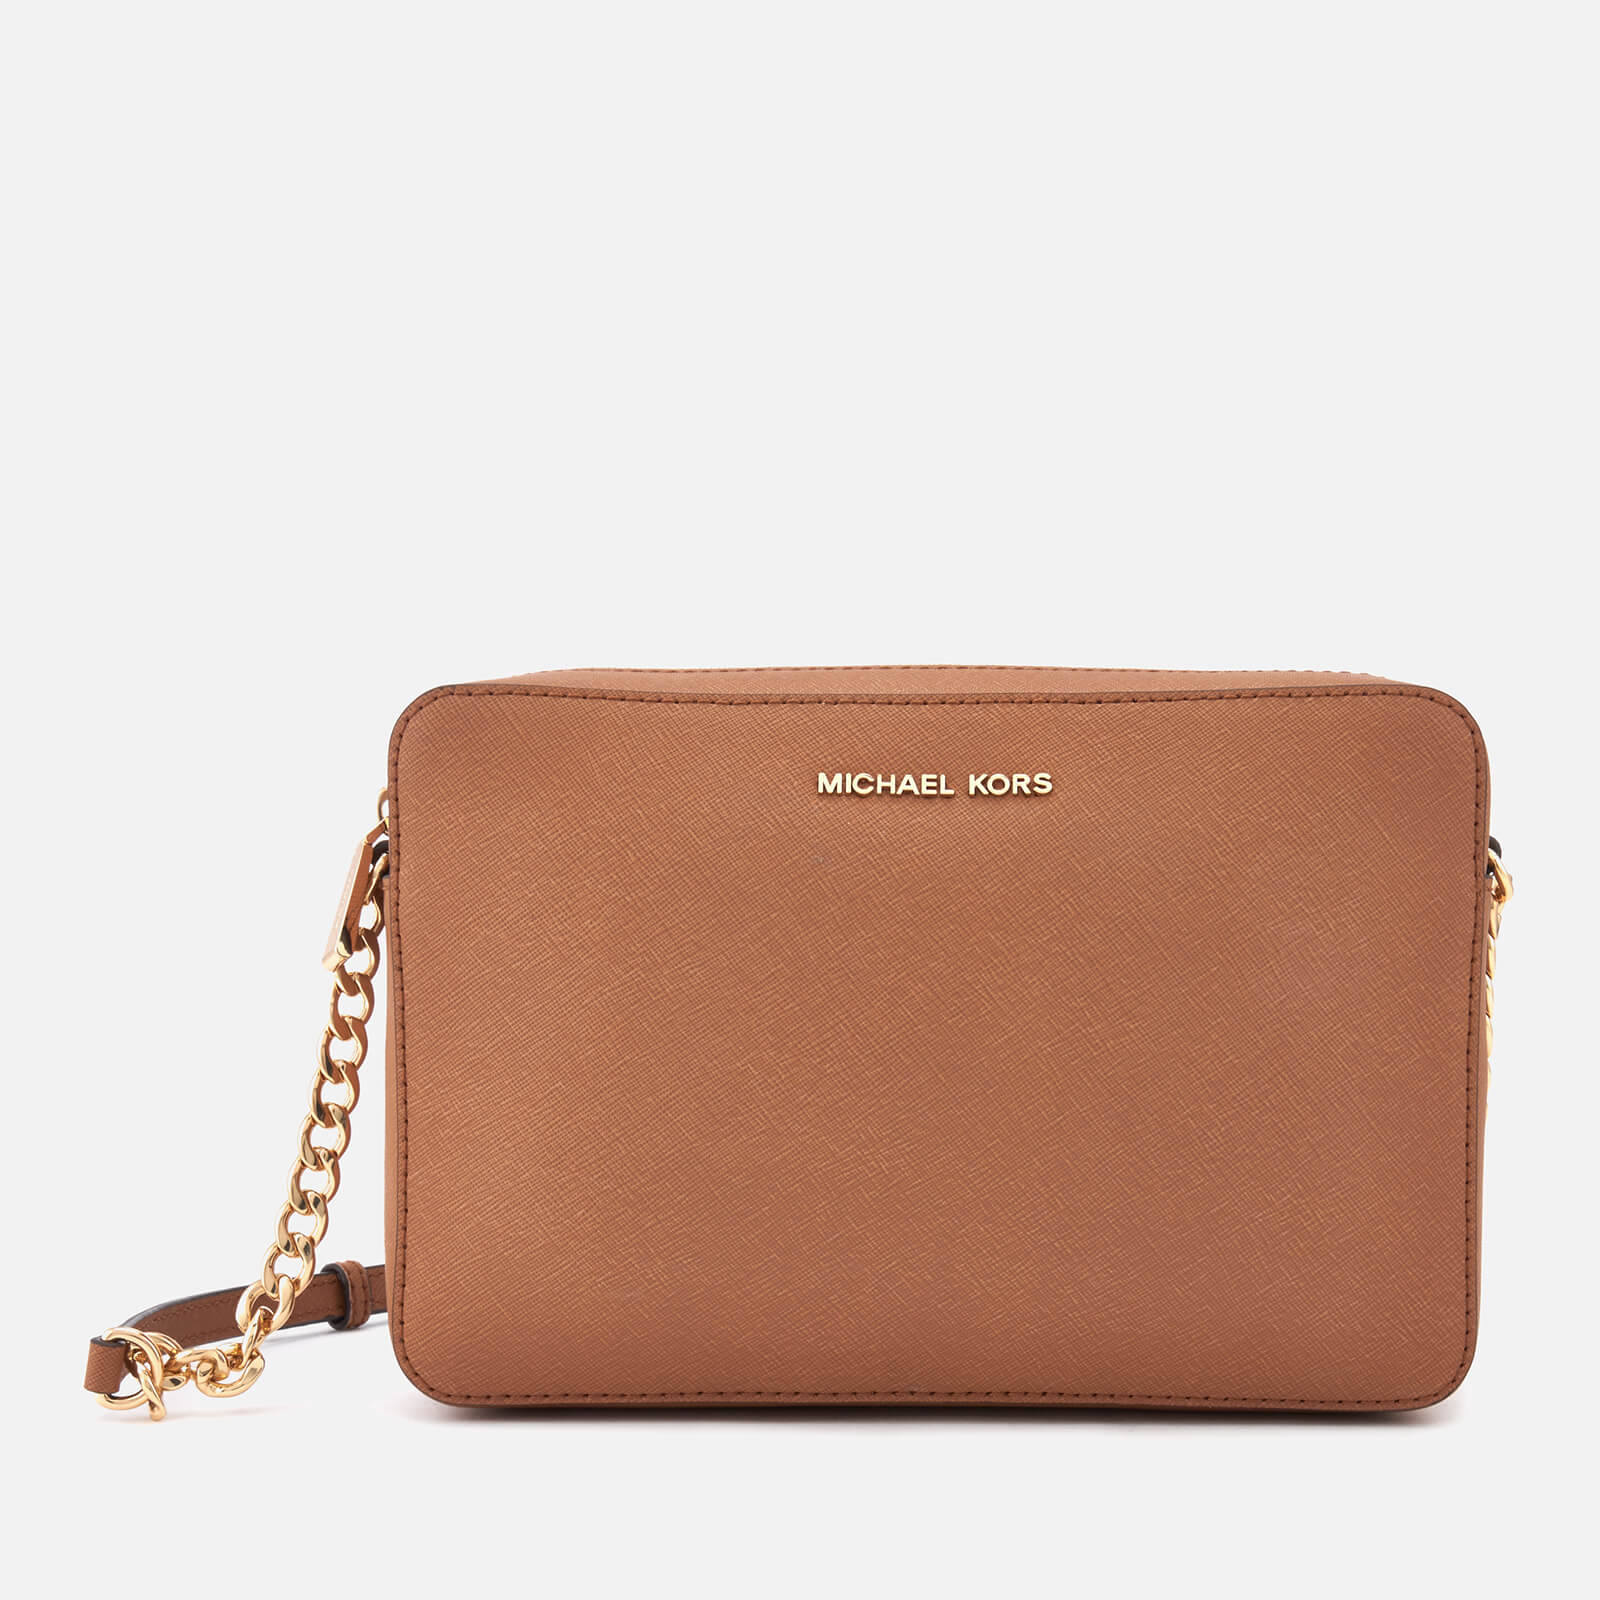 2c0f123ada2f MICHAEL MICHAEL KORS Women's Large East West Cross Body Bag - Acorn - Free  UK Delivery over £50